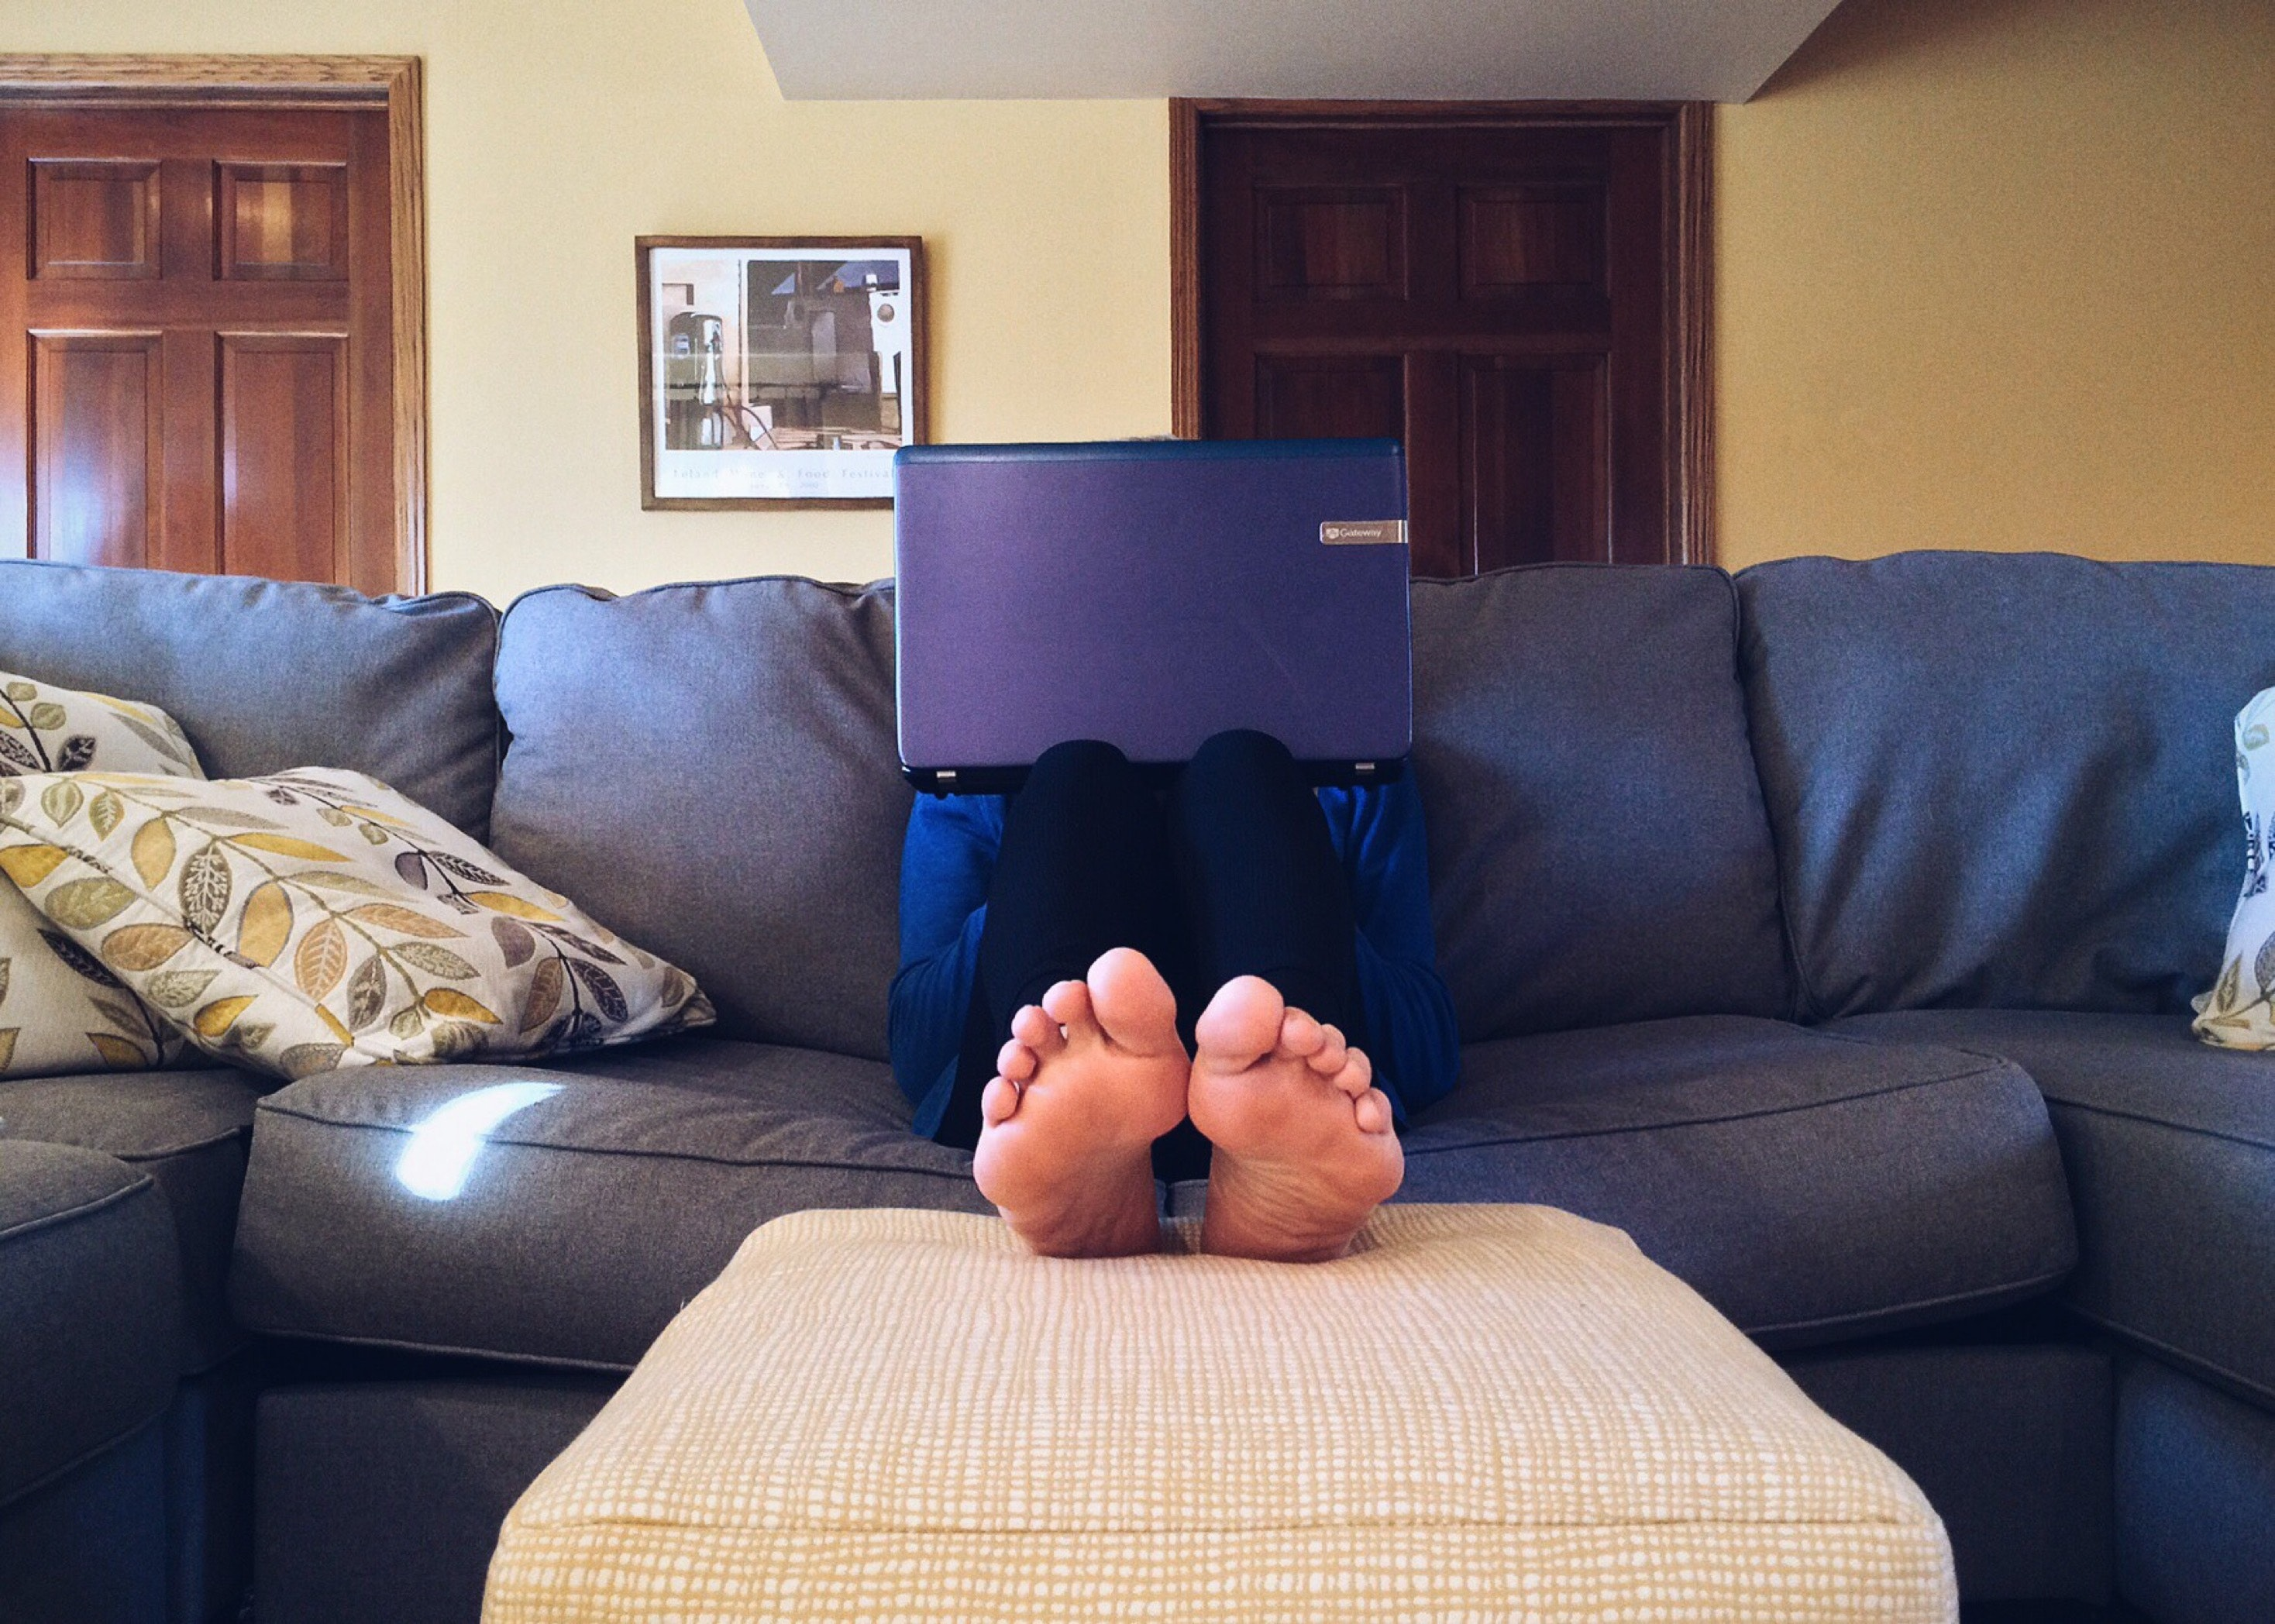 How to reach people for Christ from your living room couch